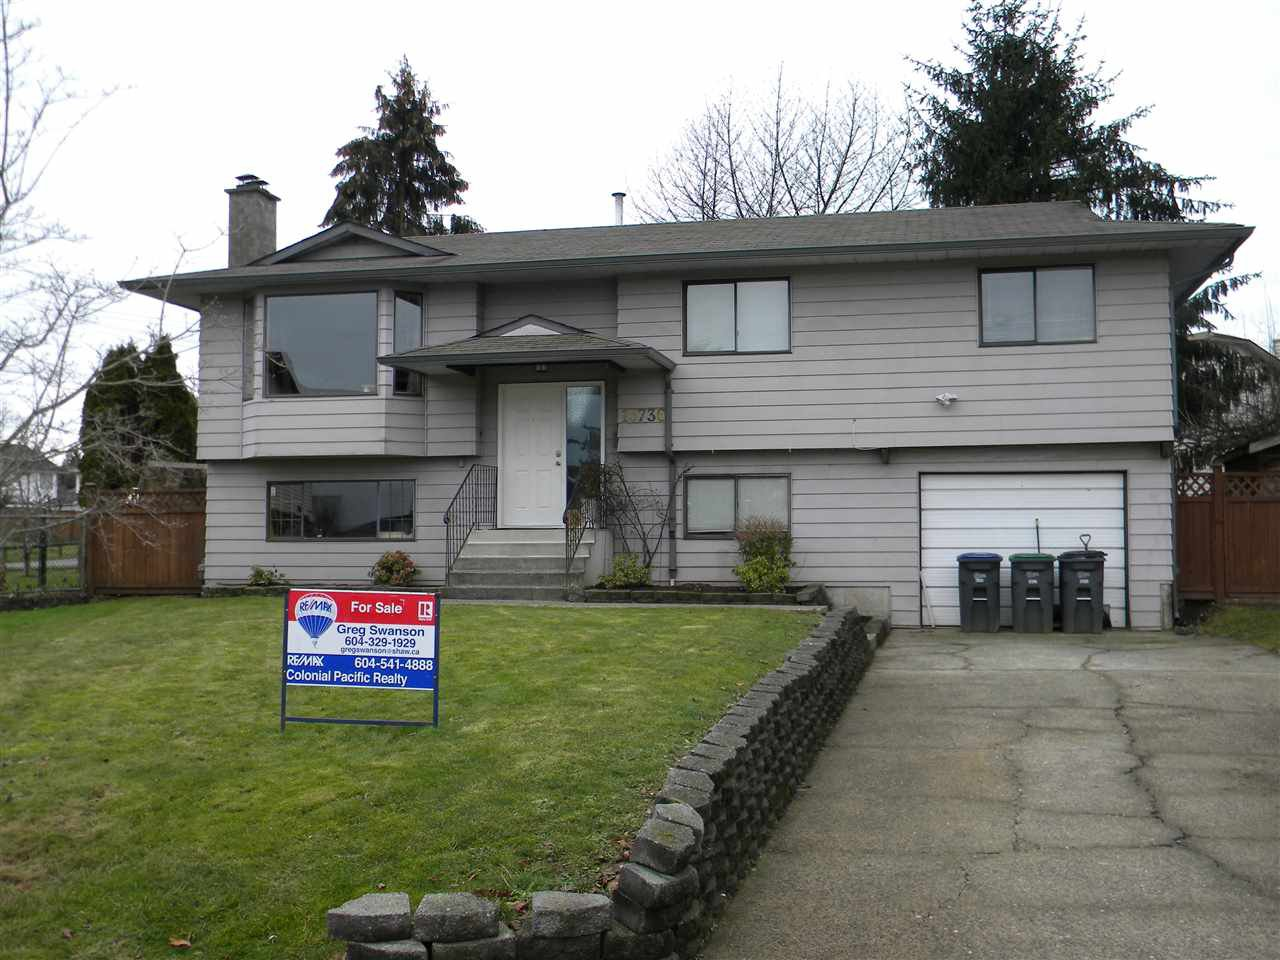 Main Photo: 15736 95A Avenue in Surrey: Fleetwood Tynehead House for sale : MLS®# R2132651